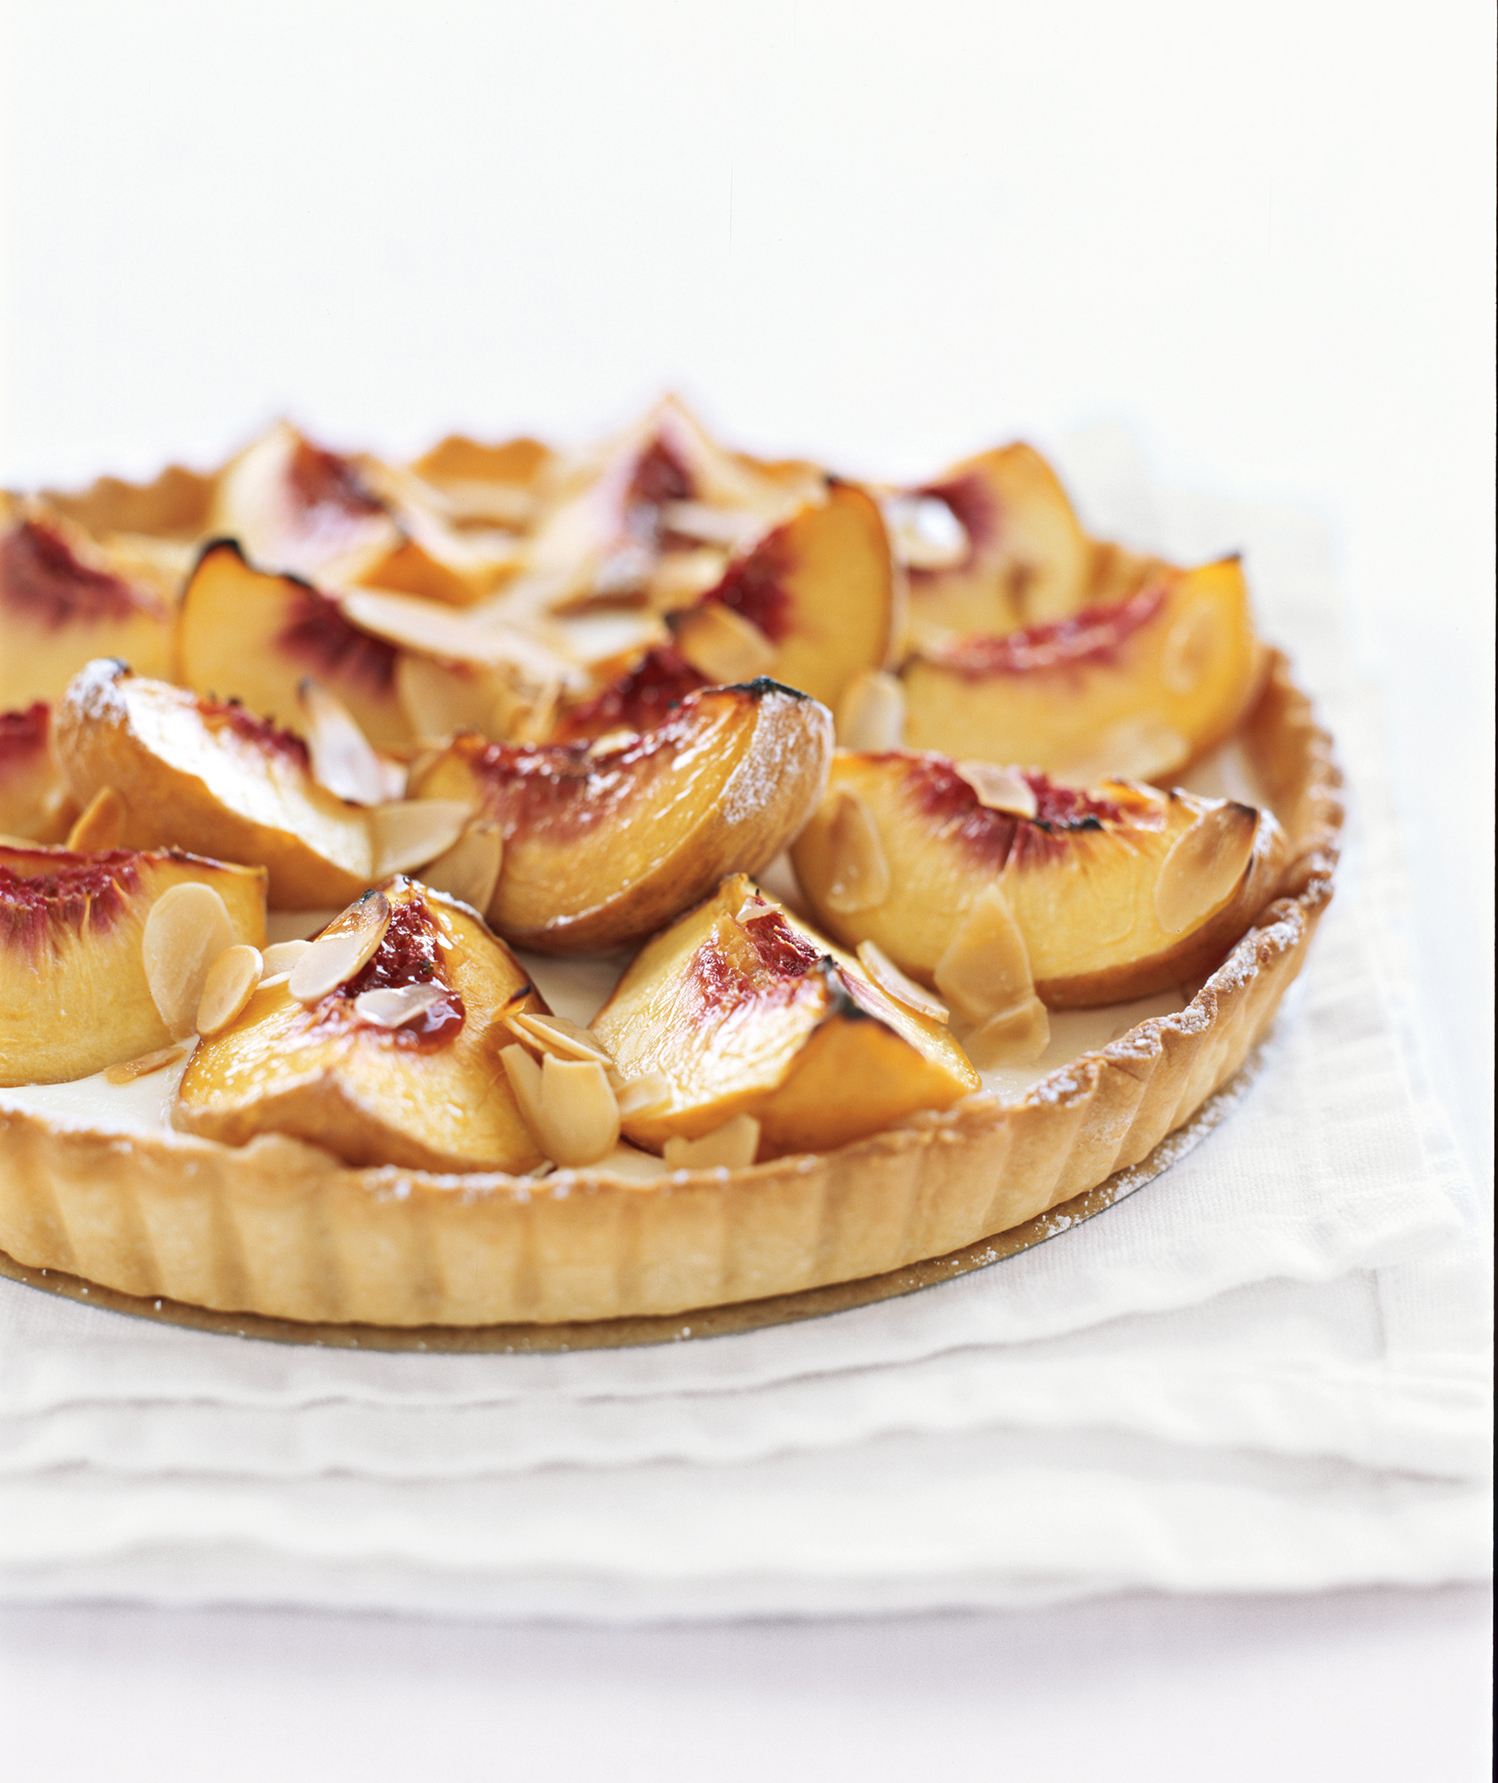 Peach and Sour Cream Tart